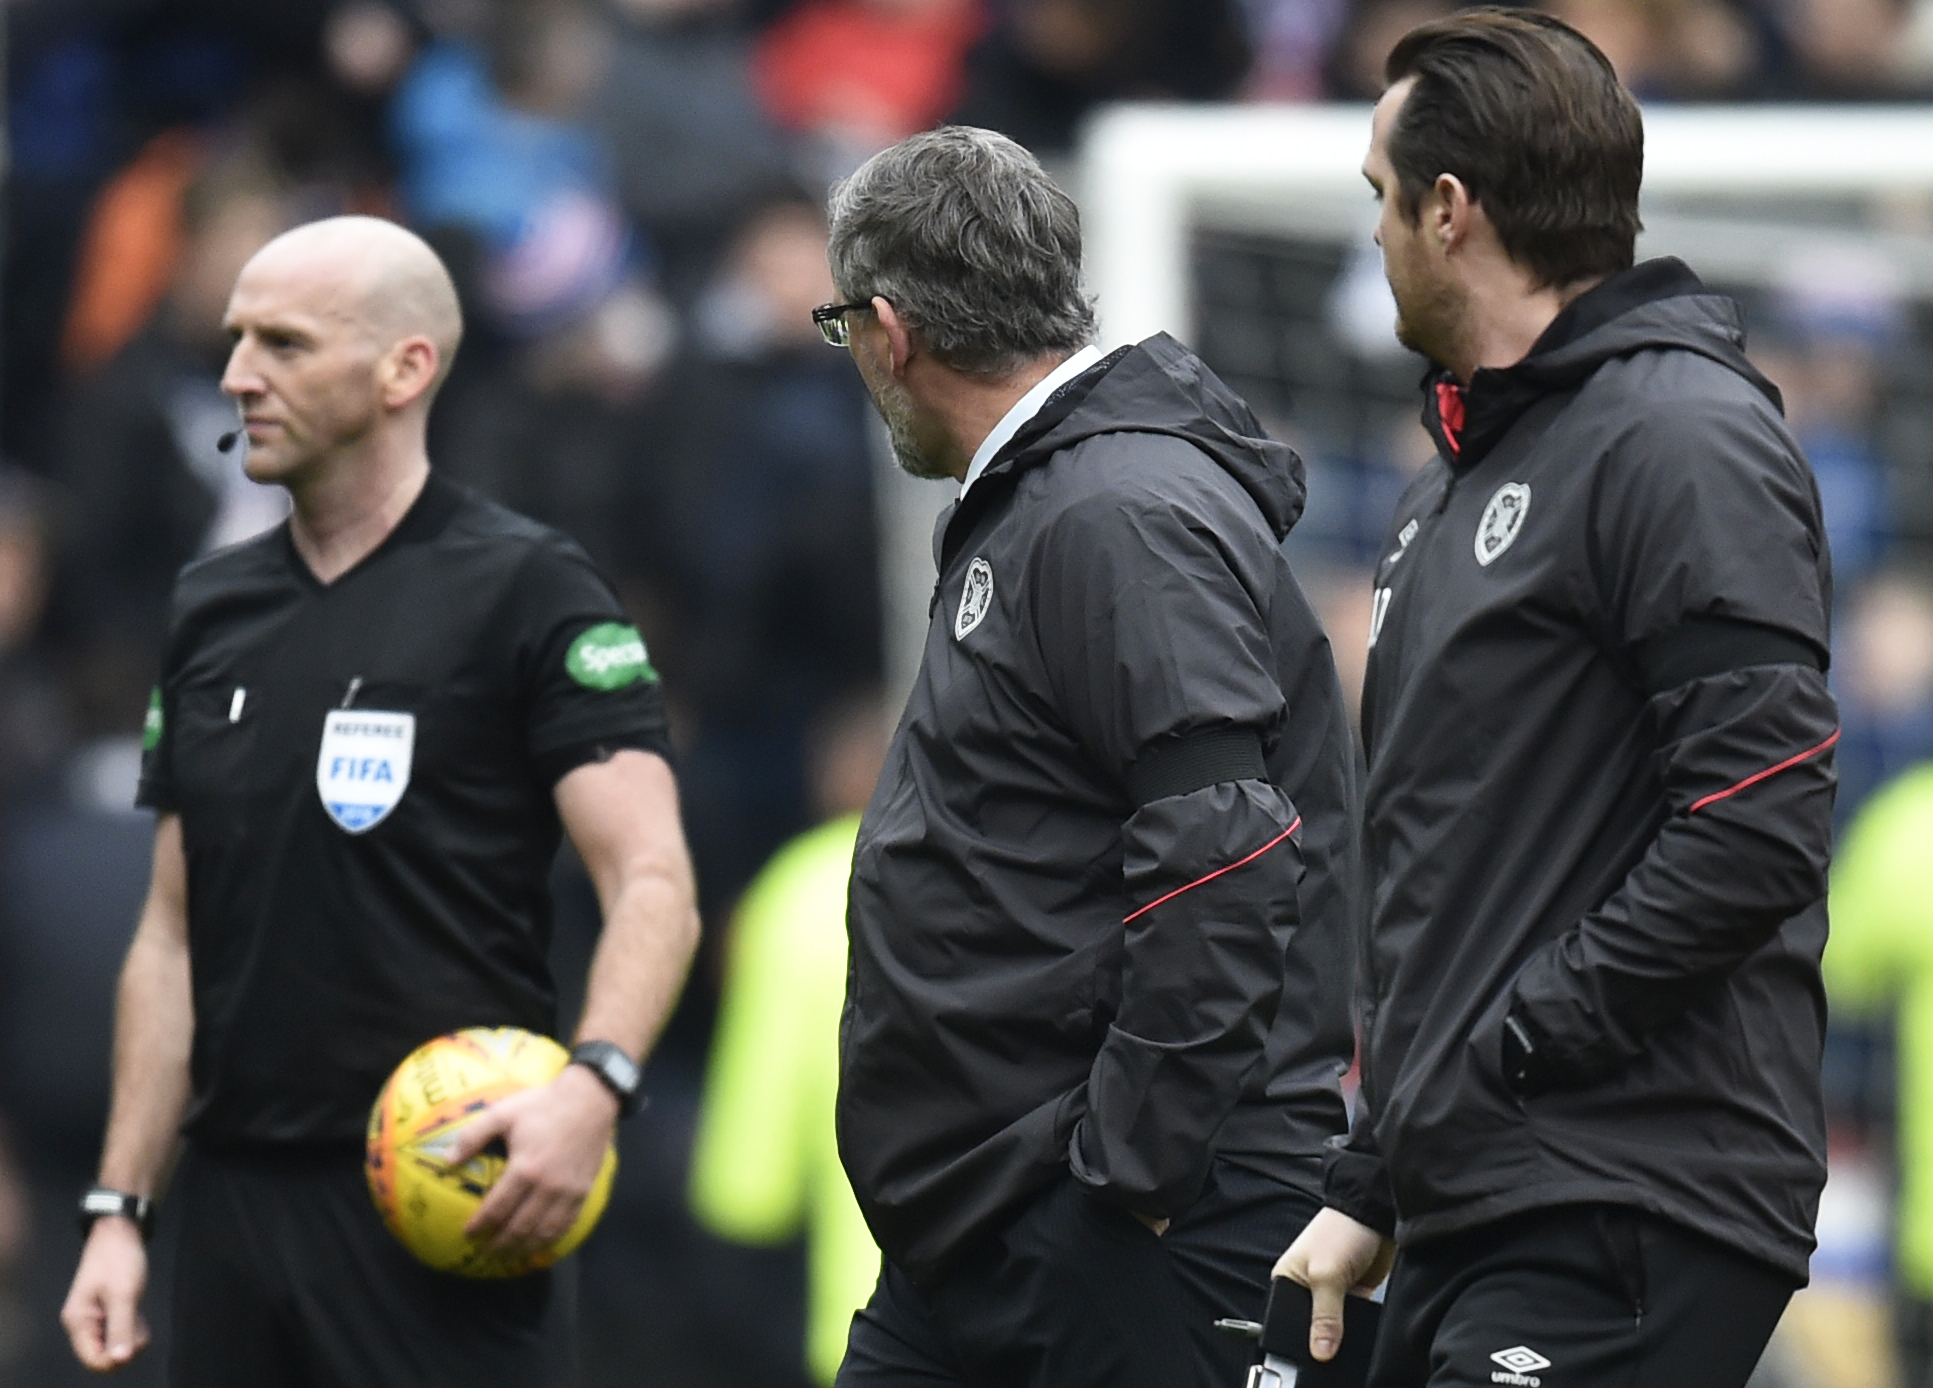 Craig Levein (right) and referee Bobby Madden